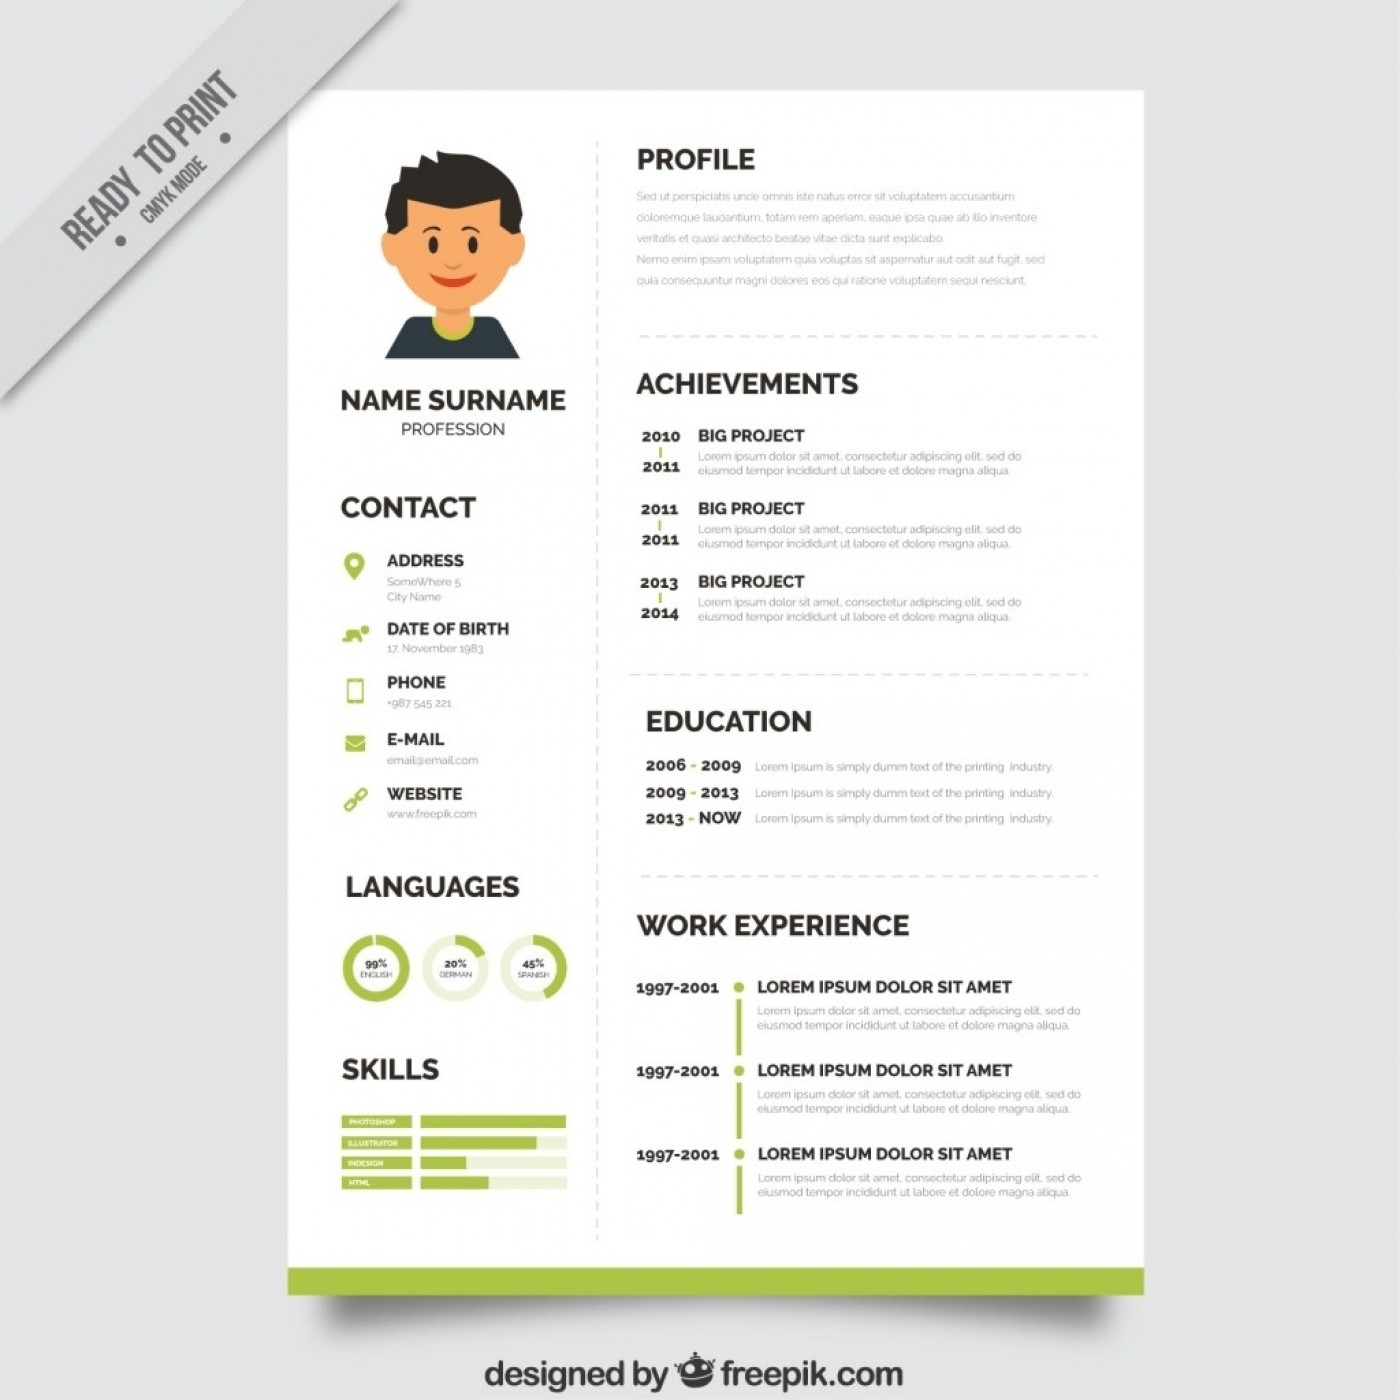 012 Resume Template Editable For It Resumes Project Ideas Free Best ... Editable Resume Format Free Download